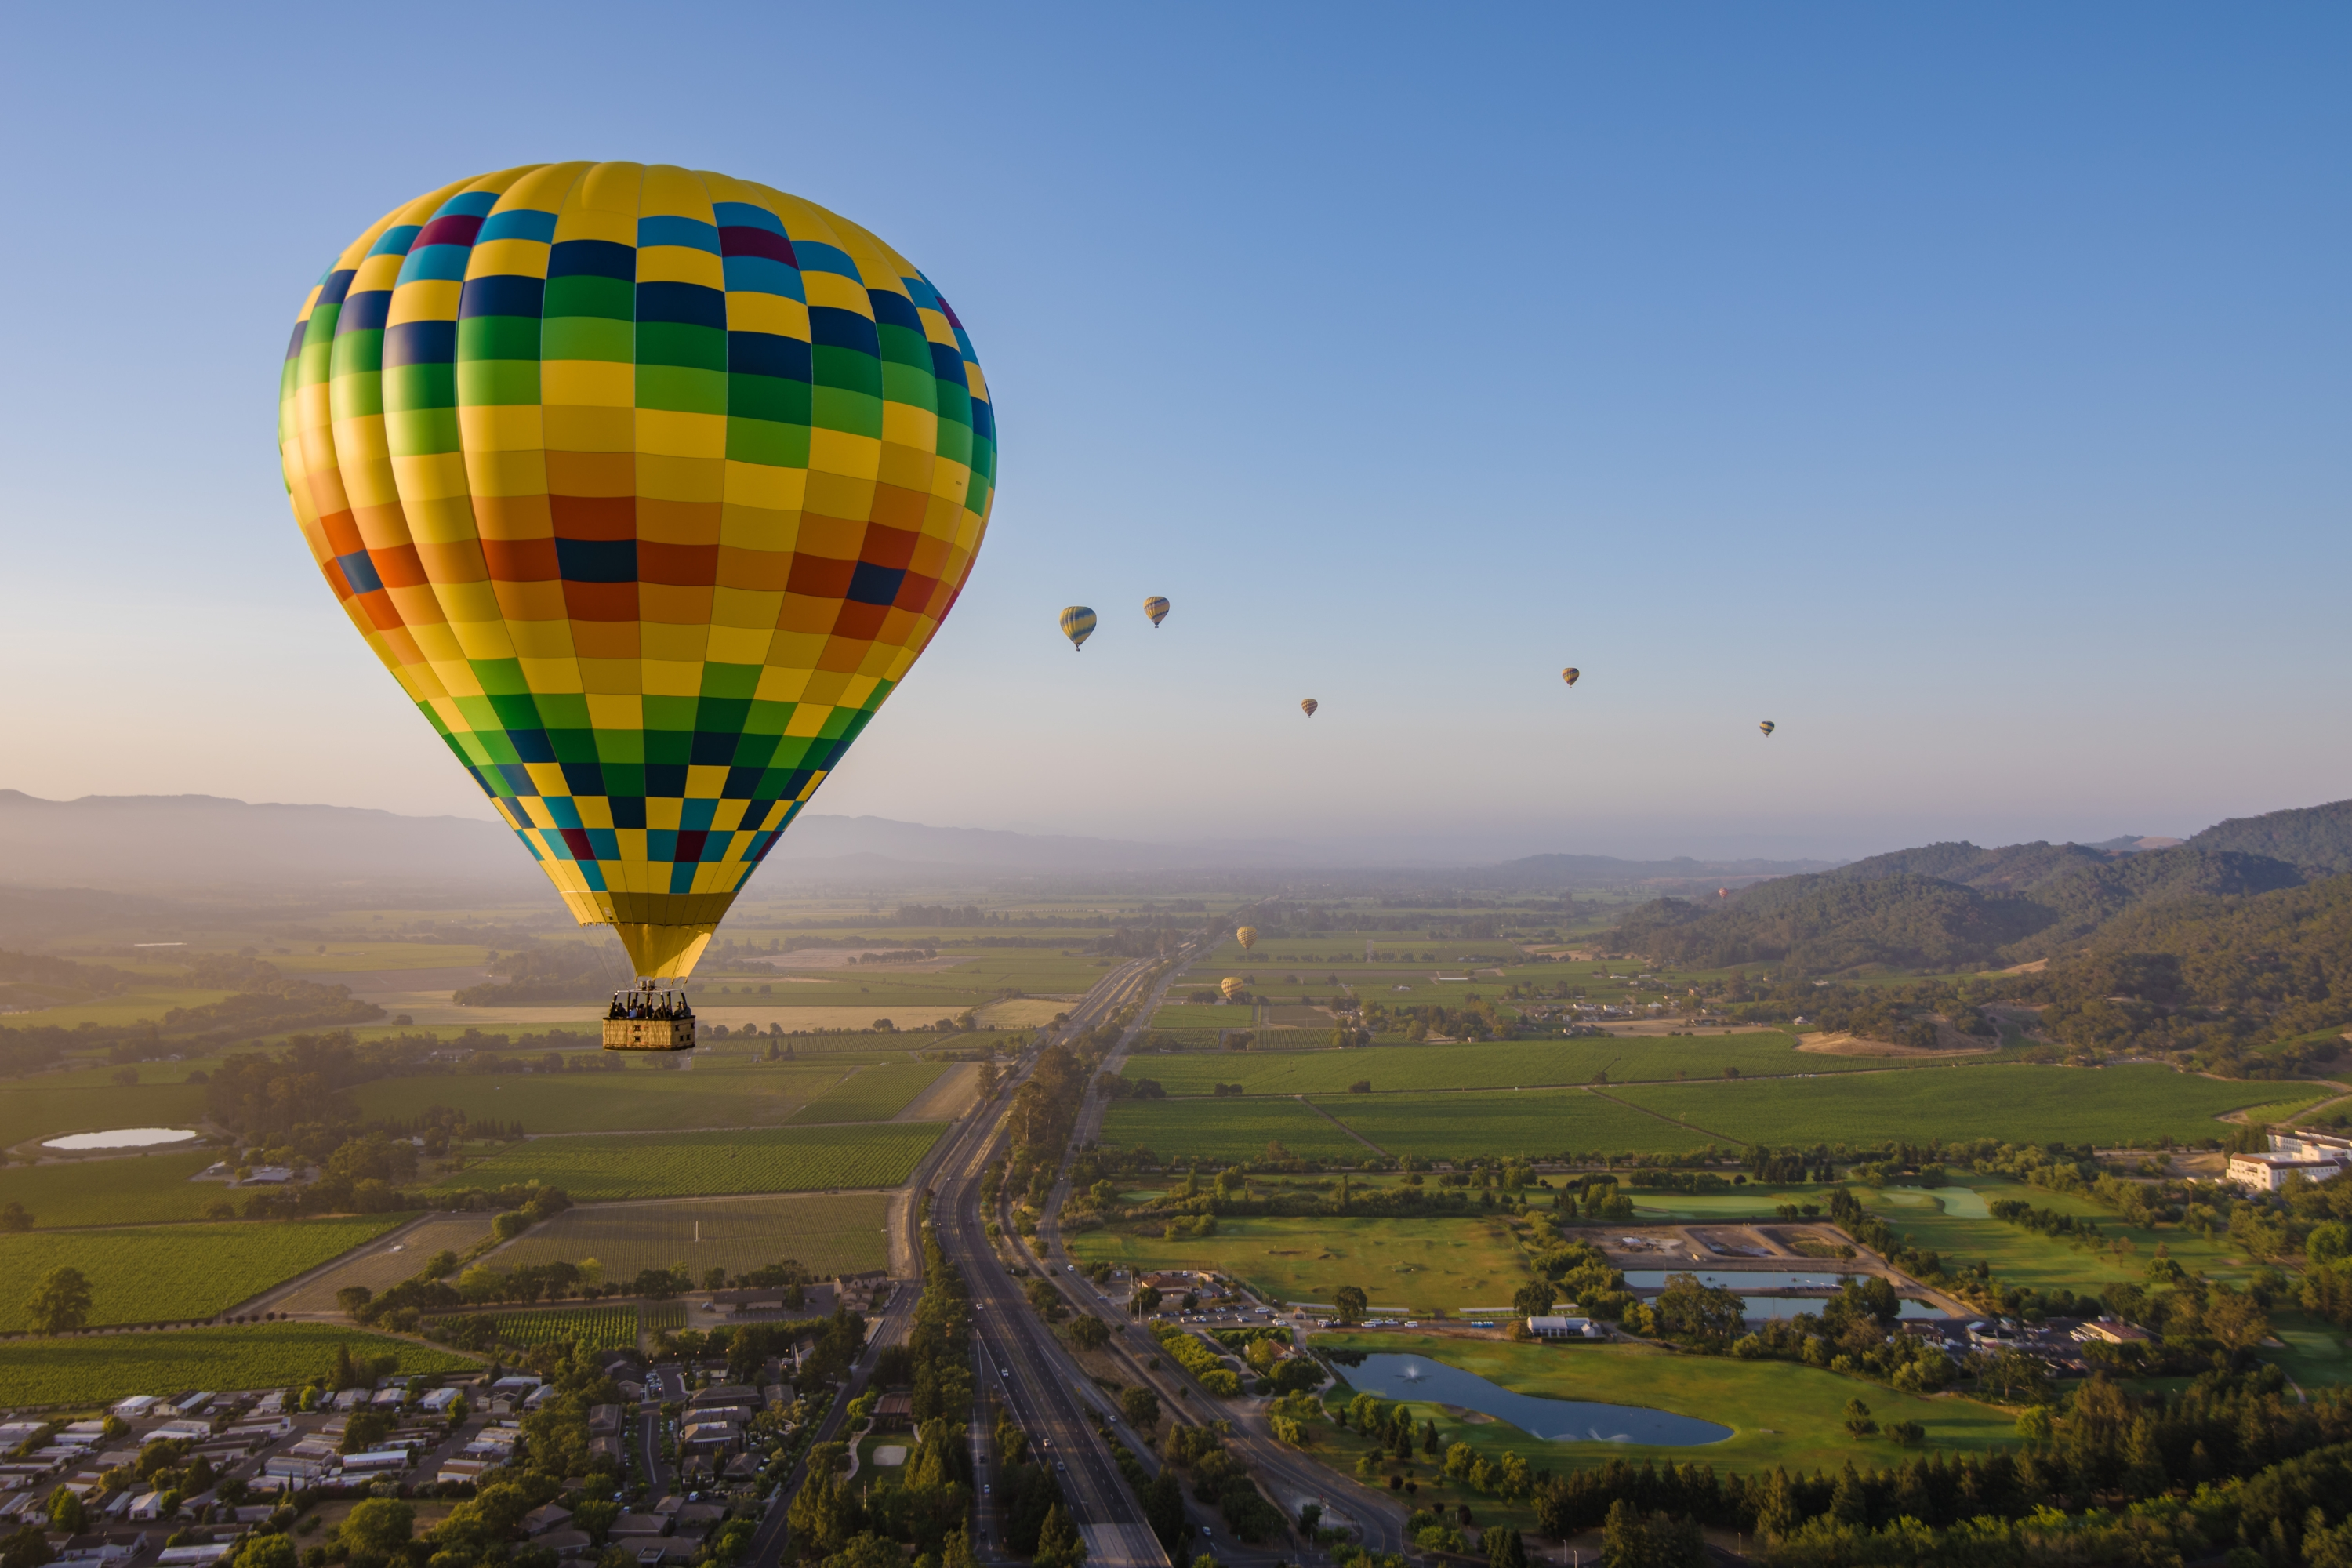 Hot Air Balloon Rides in Napa Valley | Unbeatable views